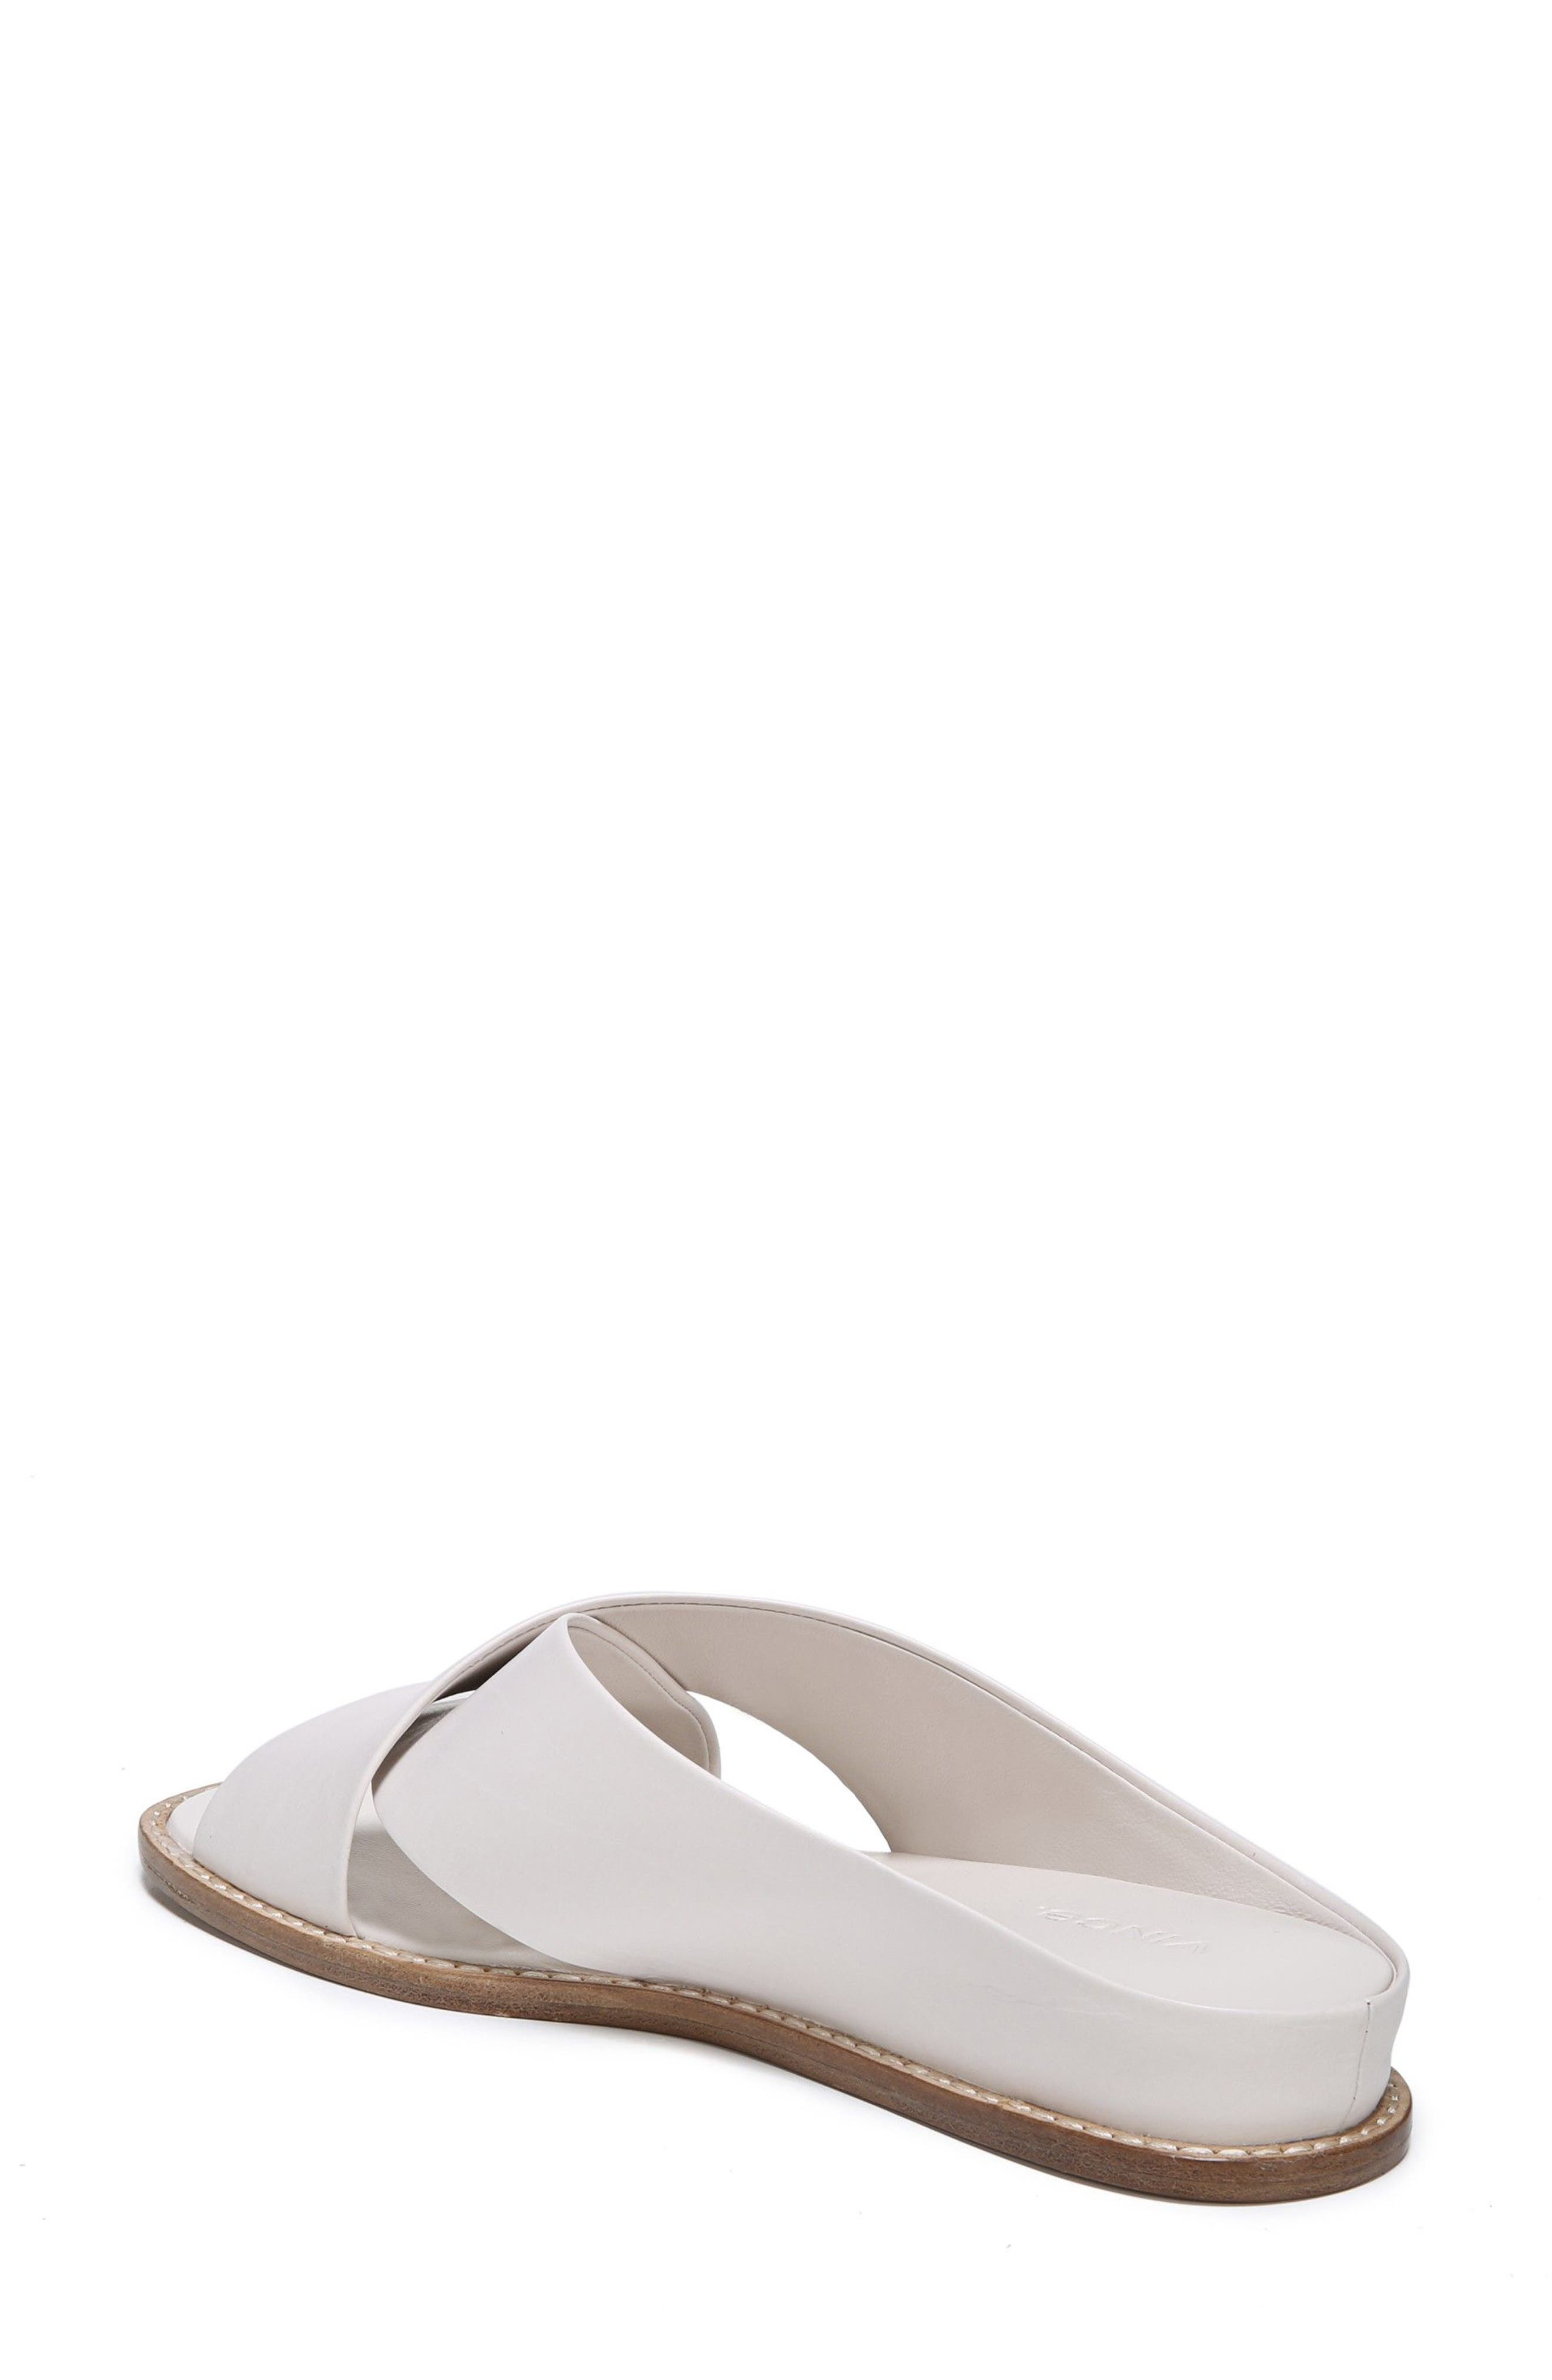 VINCE, Fairley Cross Strap Sandal, Alternate thumbnail 2, color, OFF WHITE LEATHER